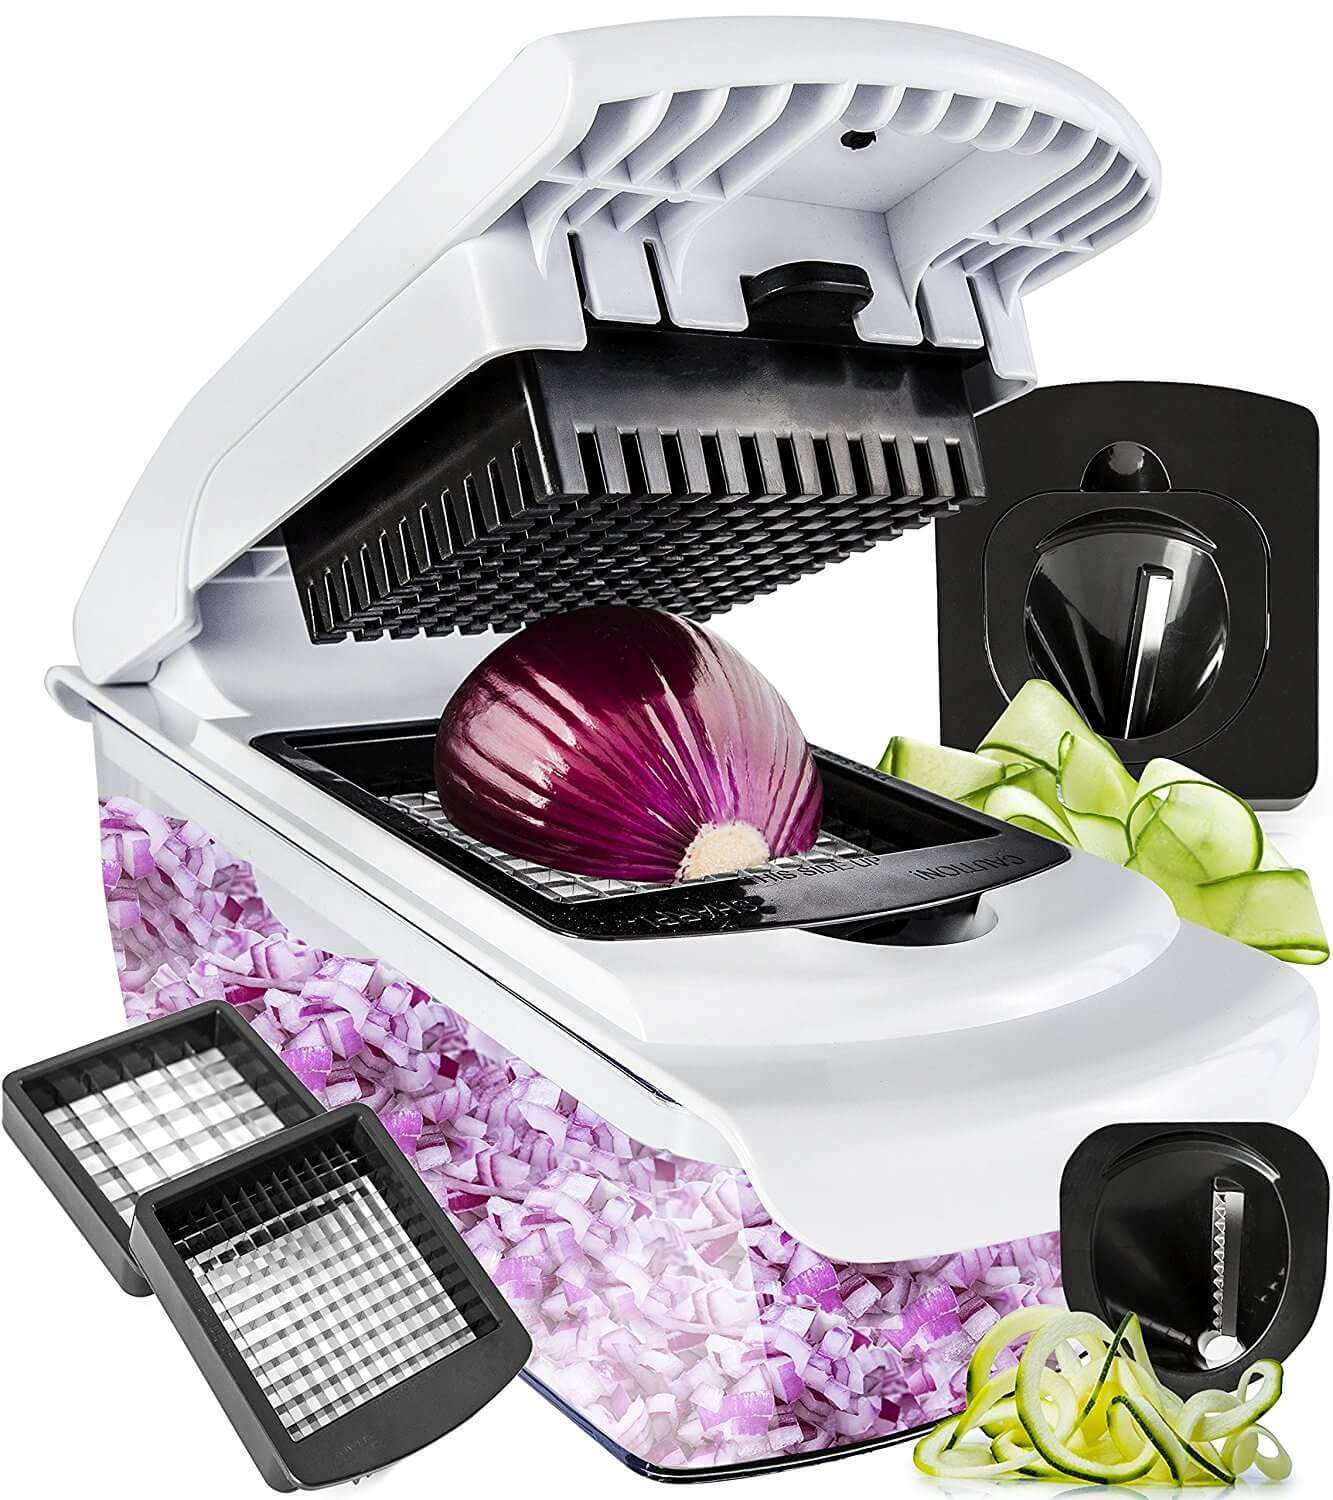 Fullstar Vegetable Chopper Spiralizer Vegetable Slicer